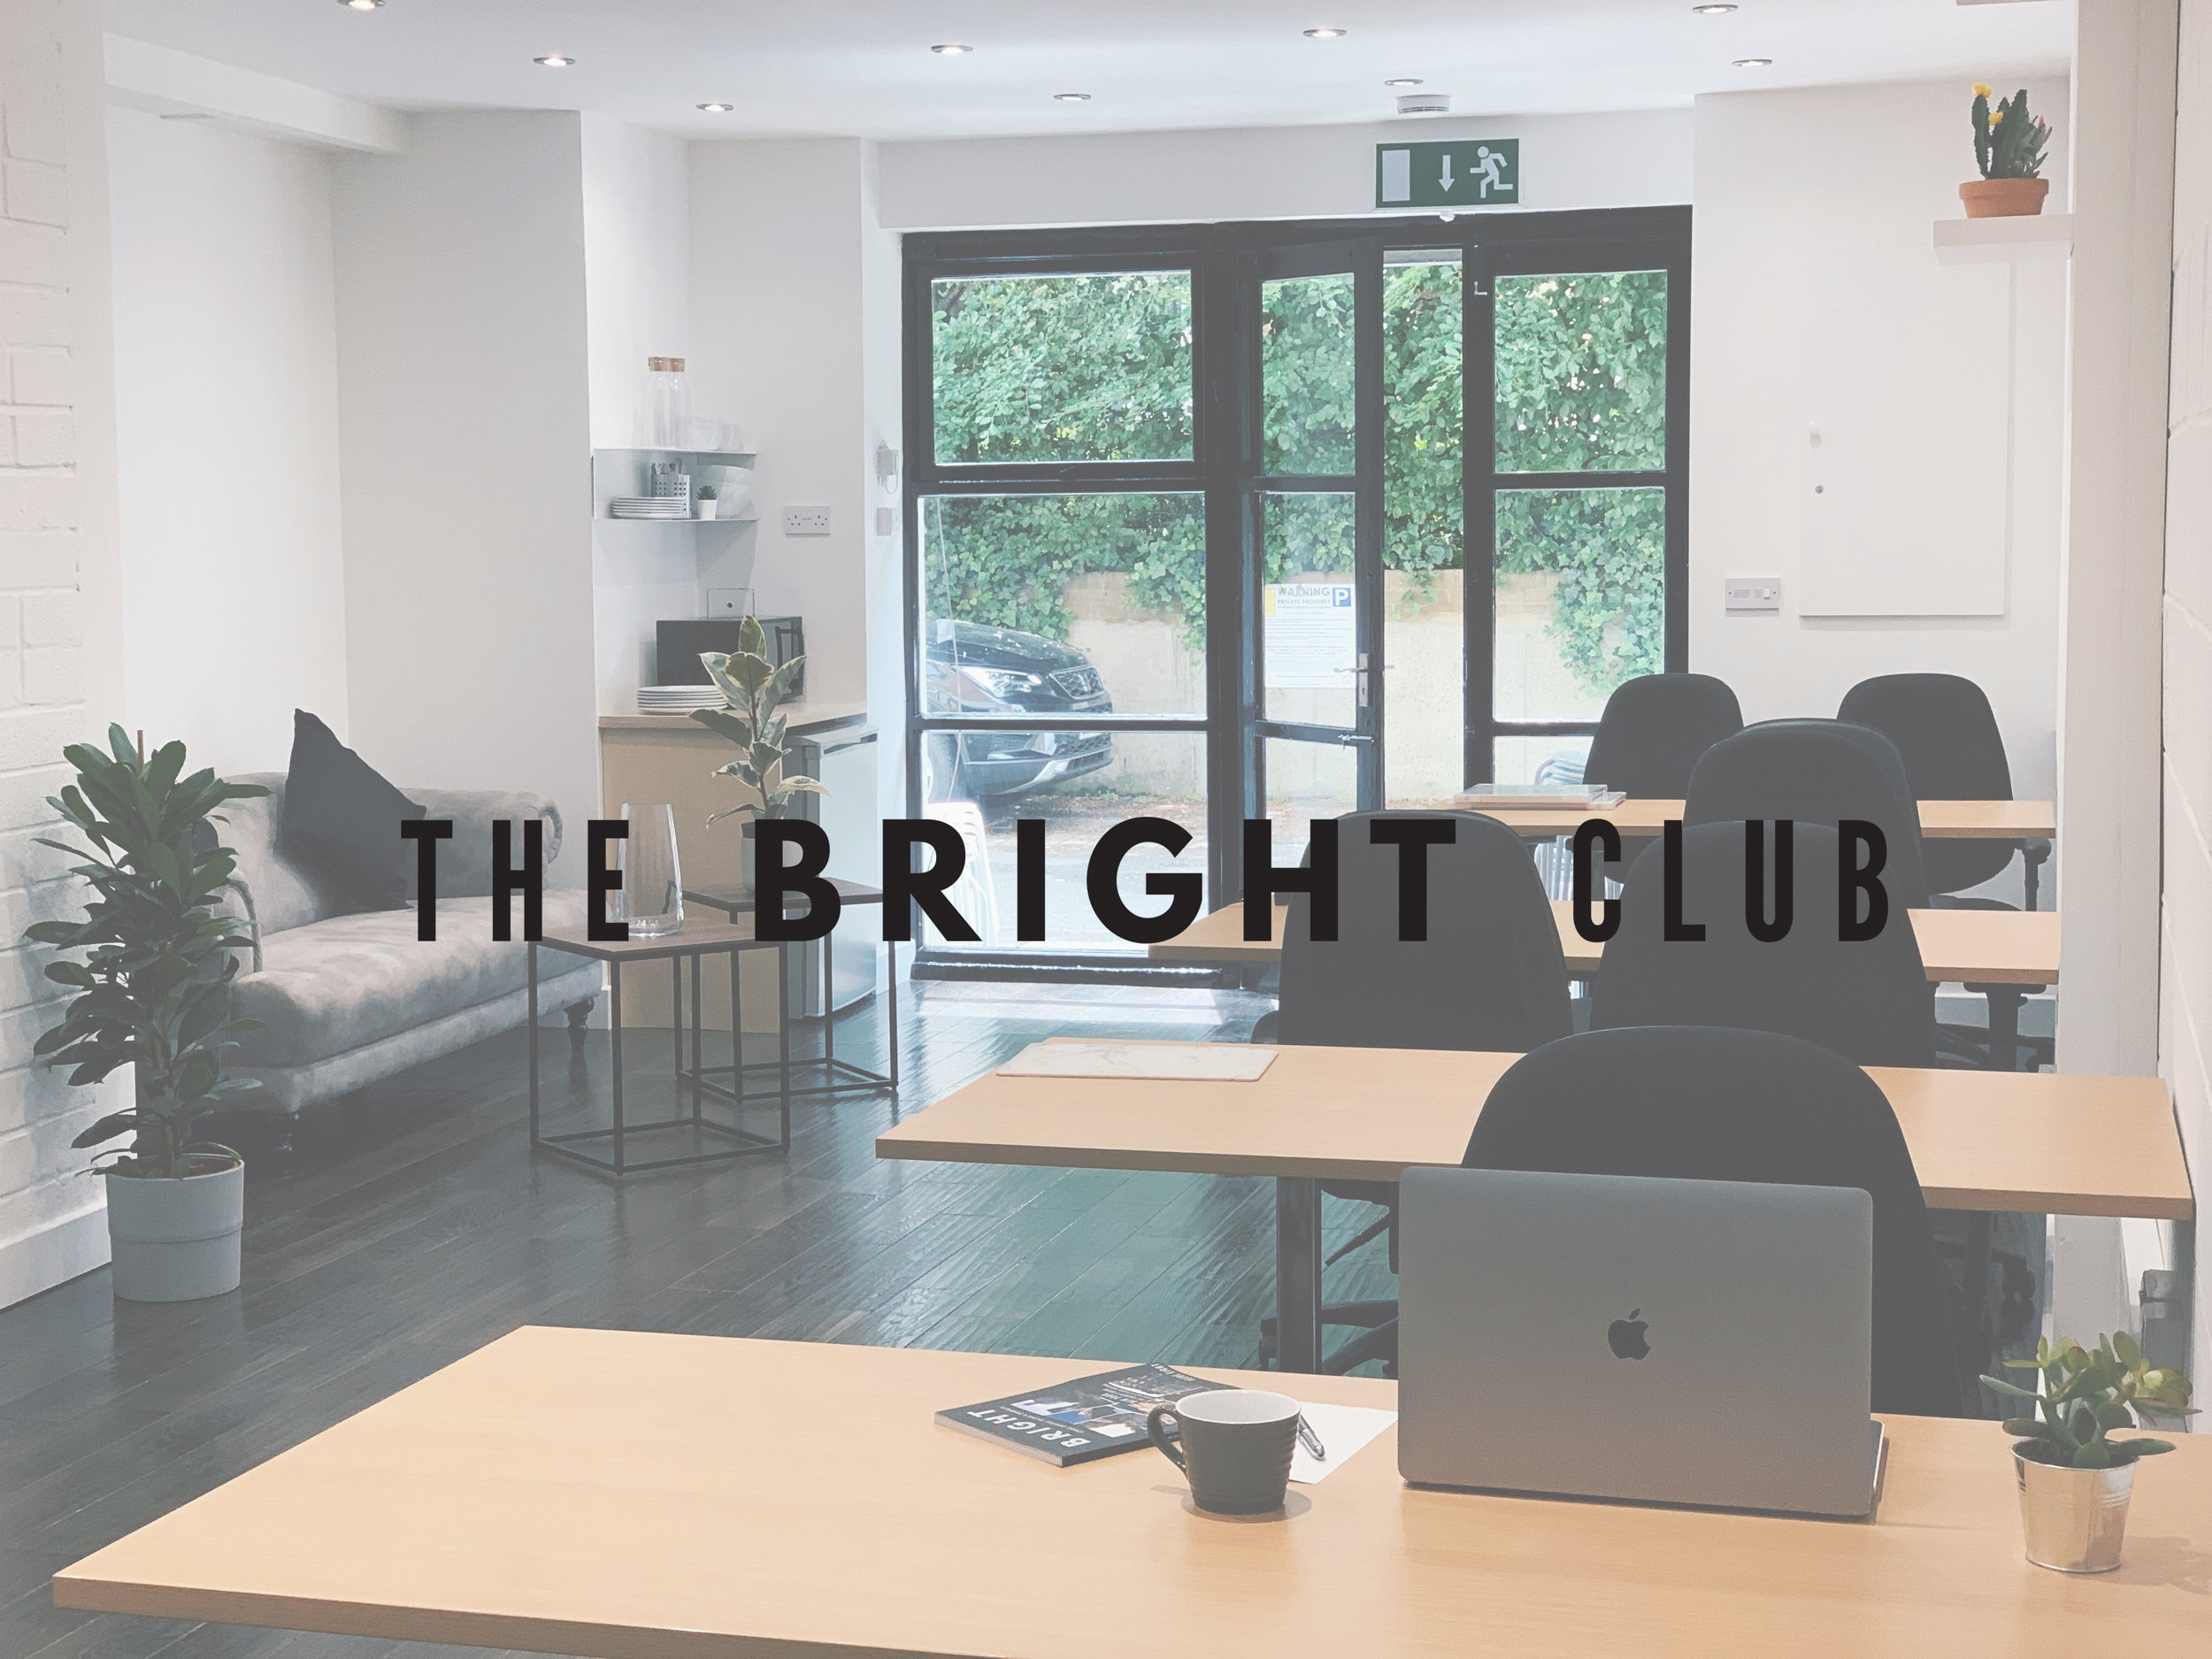 ethical coworking space london.jpg